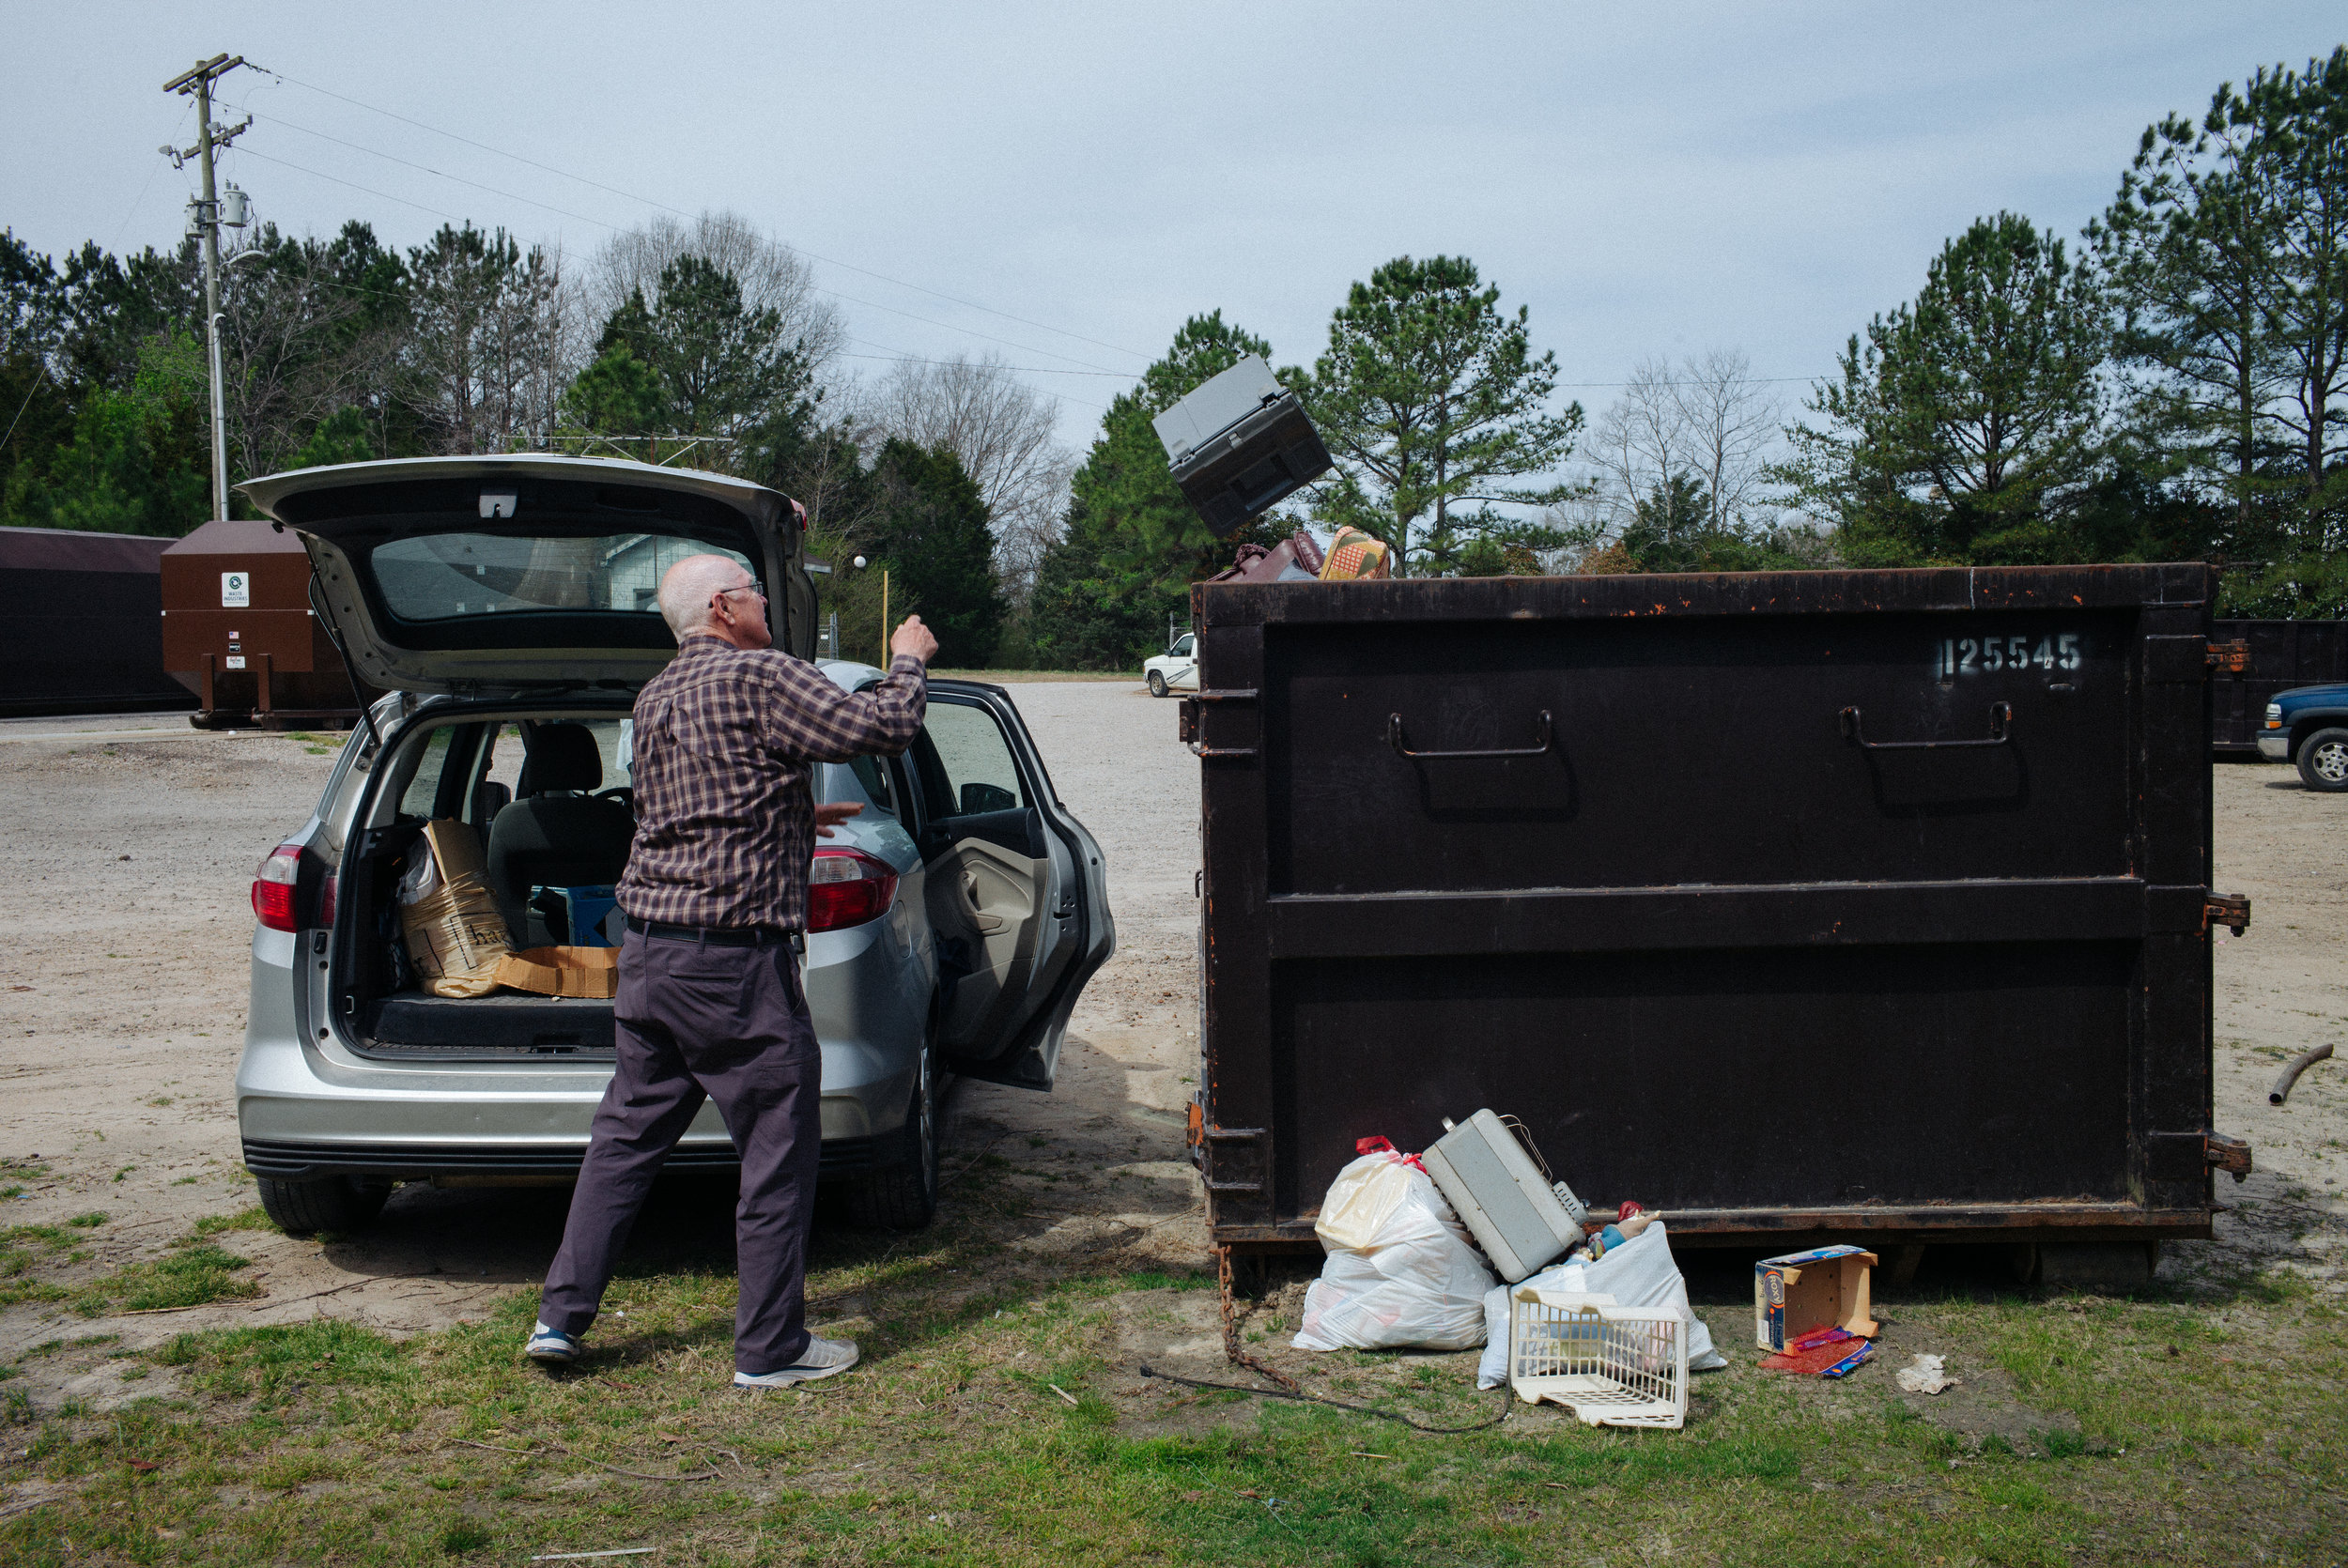 Thomas C. Field, 78, throws out trash on Saturday, March 25, 2017 in Littleton, North Carolina. The couple starts working cleaning their house and finding buyers on the market.